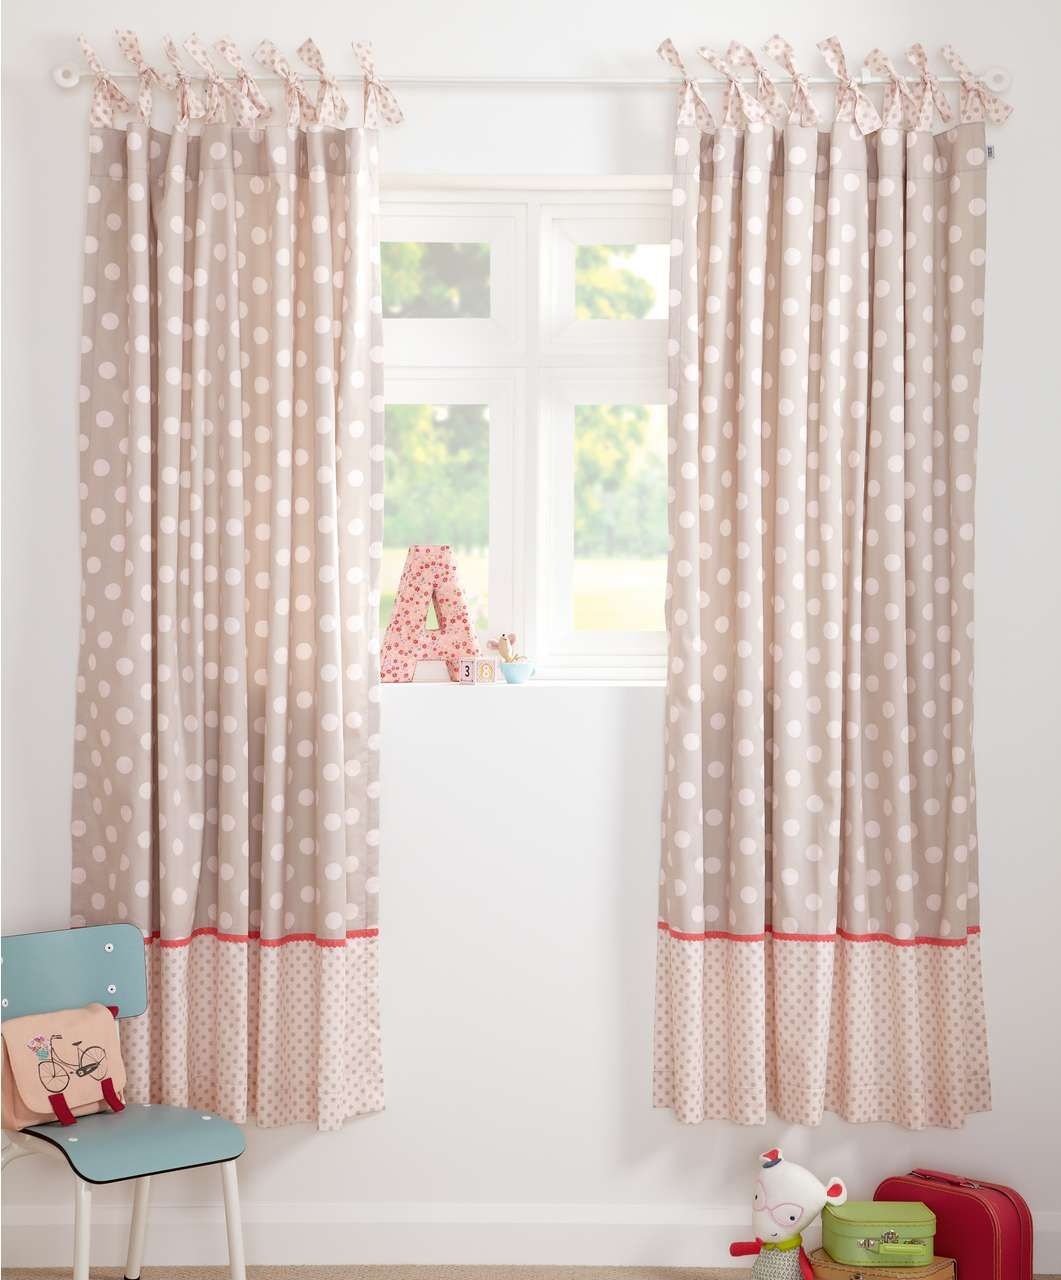 Girls Curtains Pixie And Finch Girls Curtains 132 X 160cm Pixie